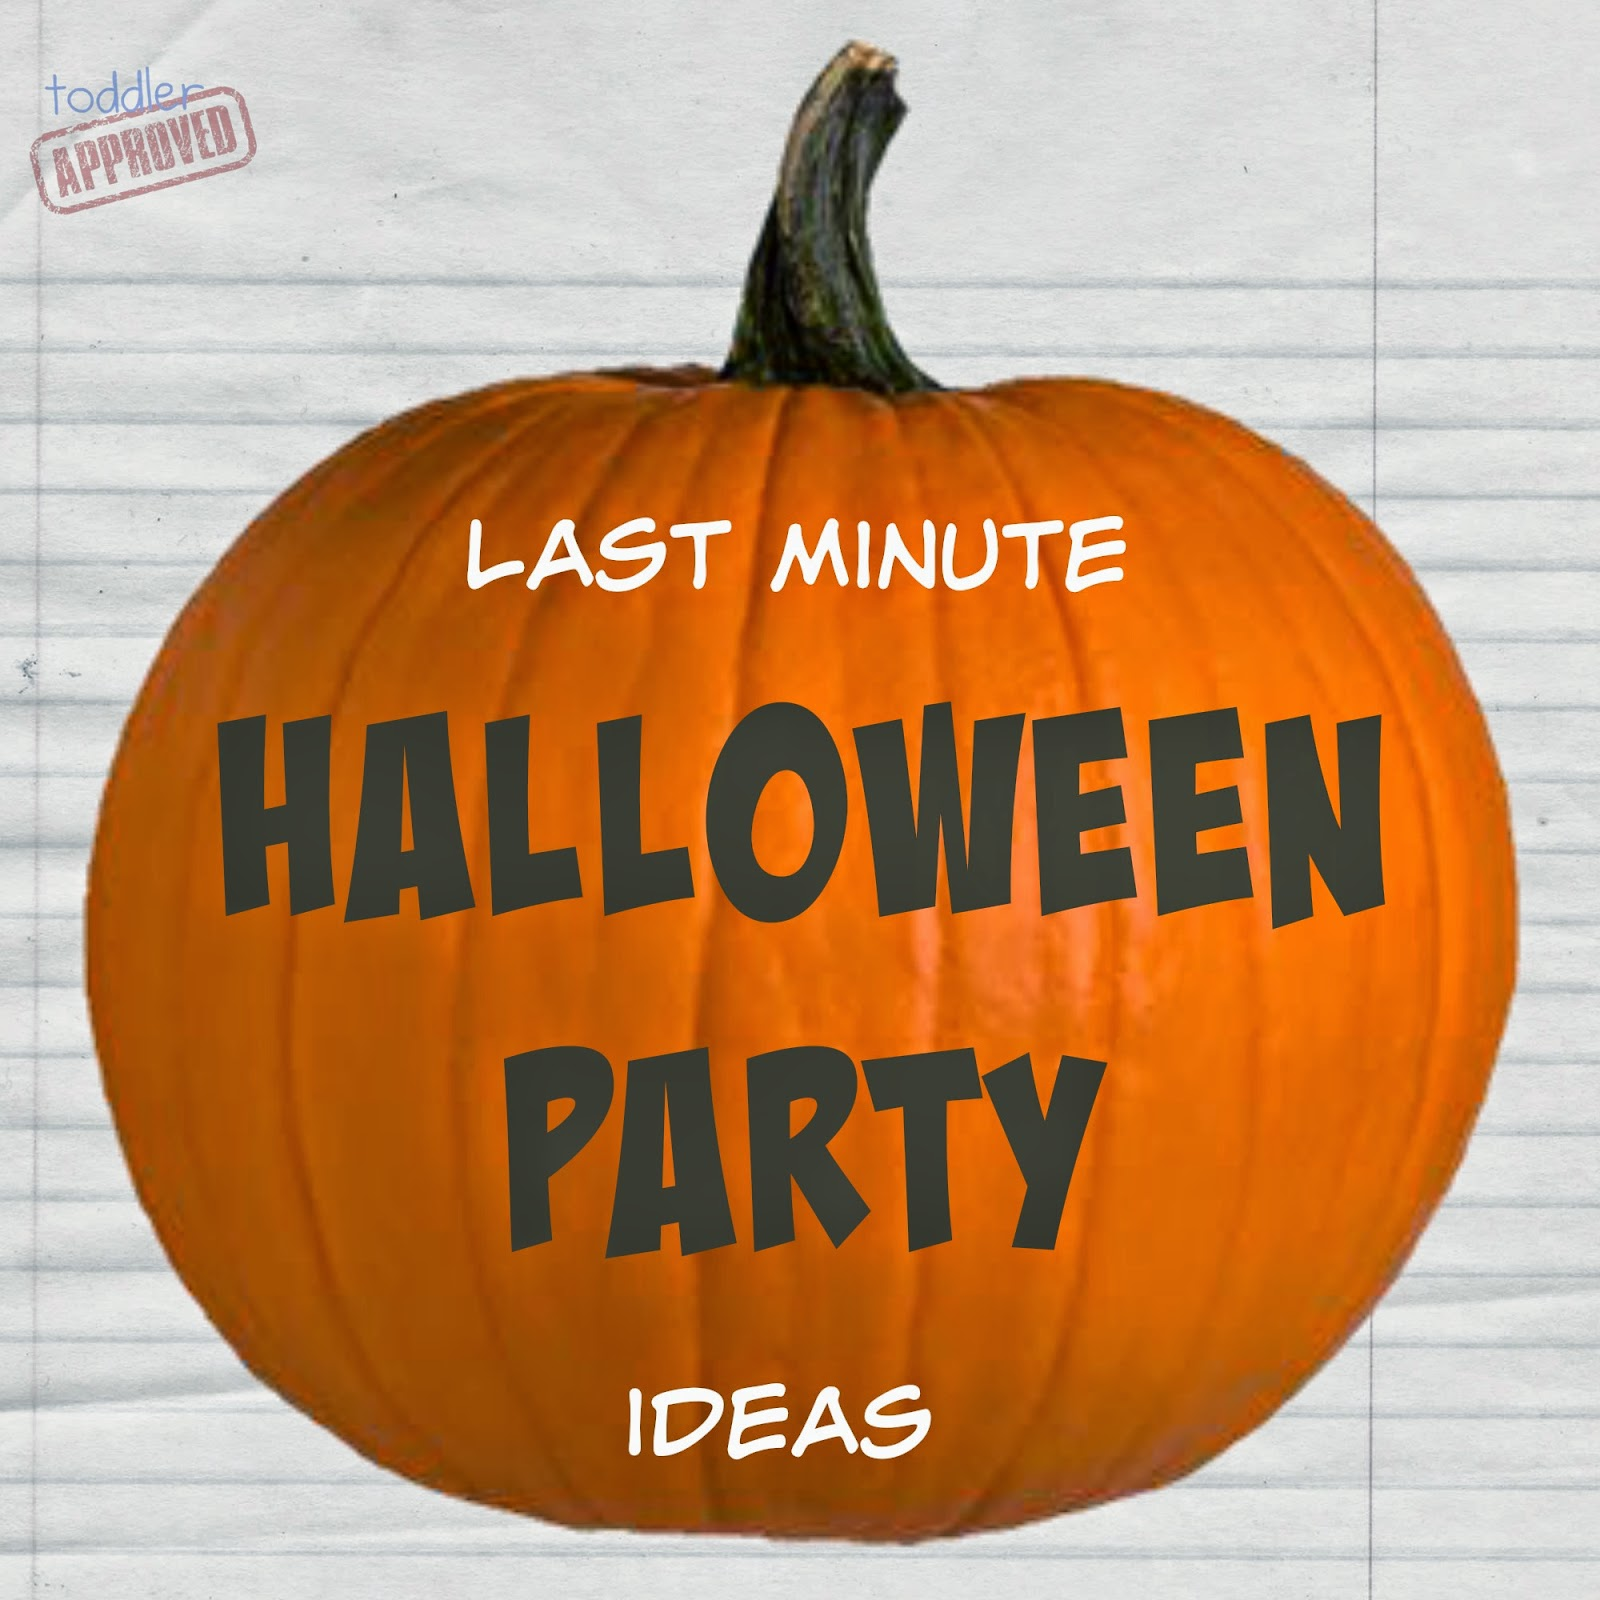 are you throwing a halloween party do you plan ahead or do everything last minute like me - Haloween Party Ideas